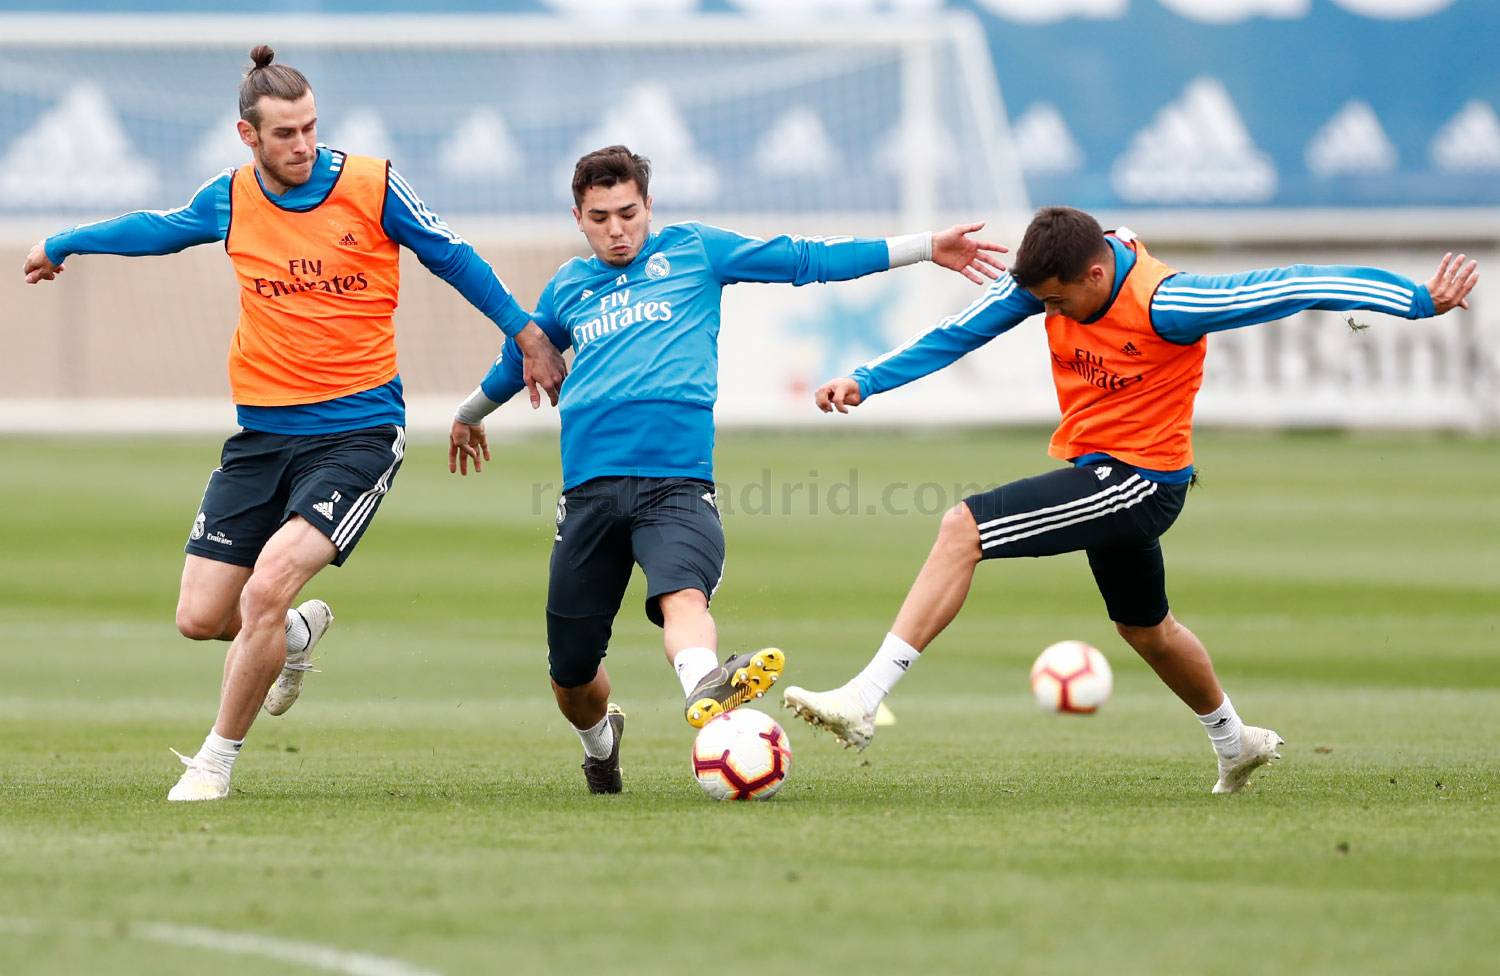 Real Madrid - Entrenamiento del Real Madrid - 20-04-2019